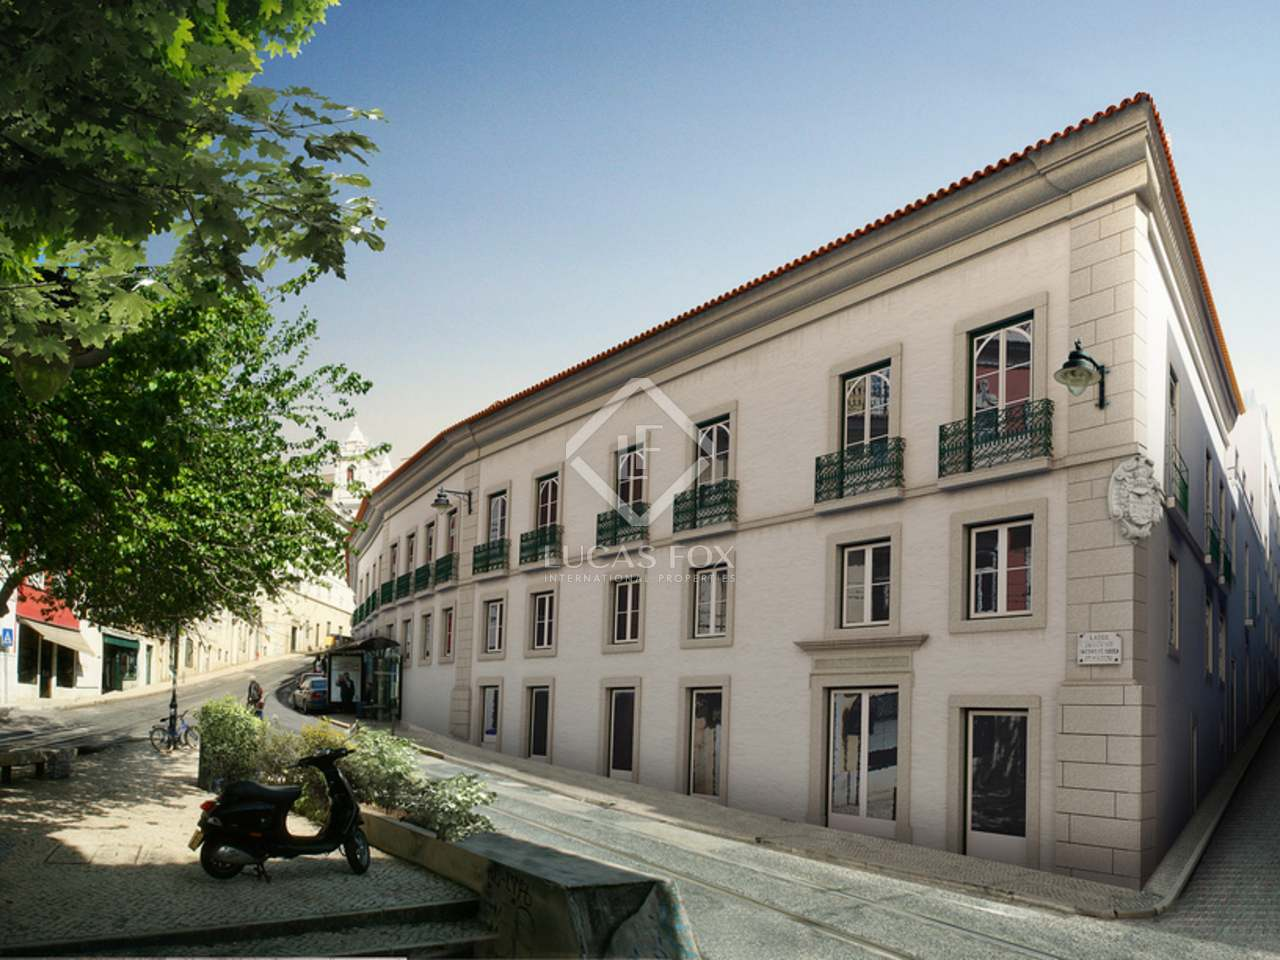 2-bedroom apartments for sale in Lisbon in an historic palace